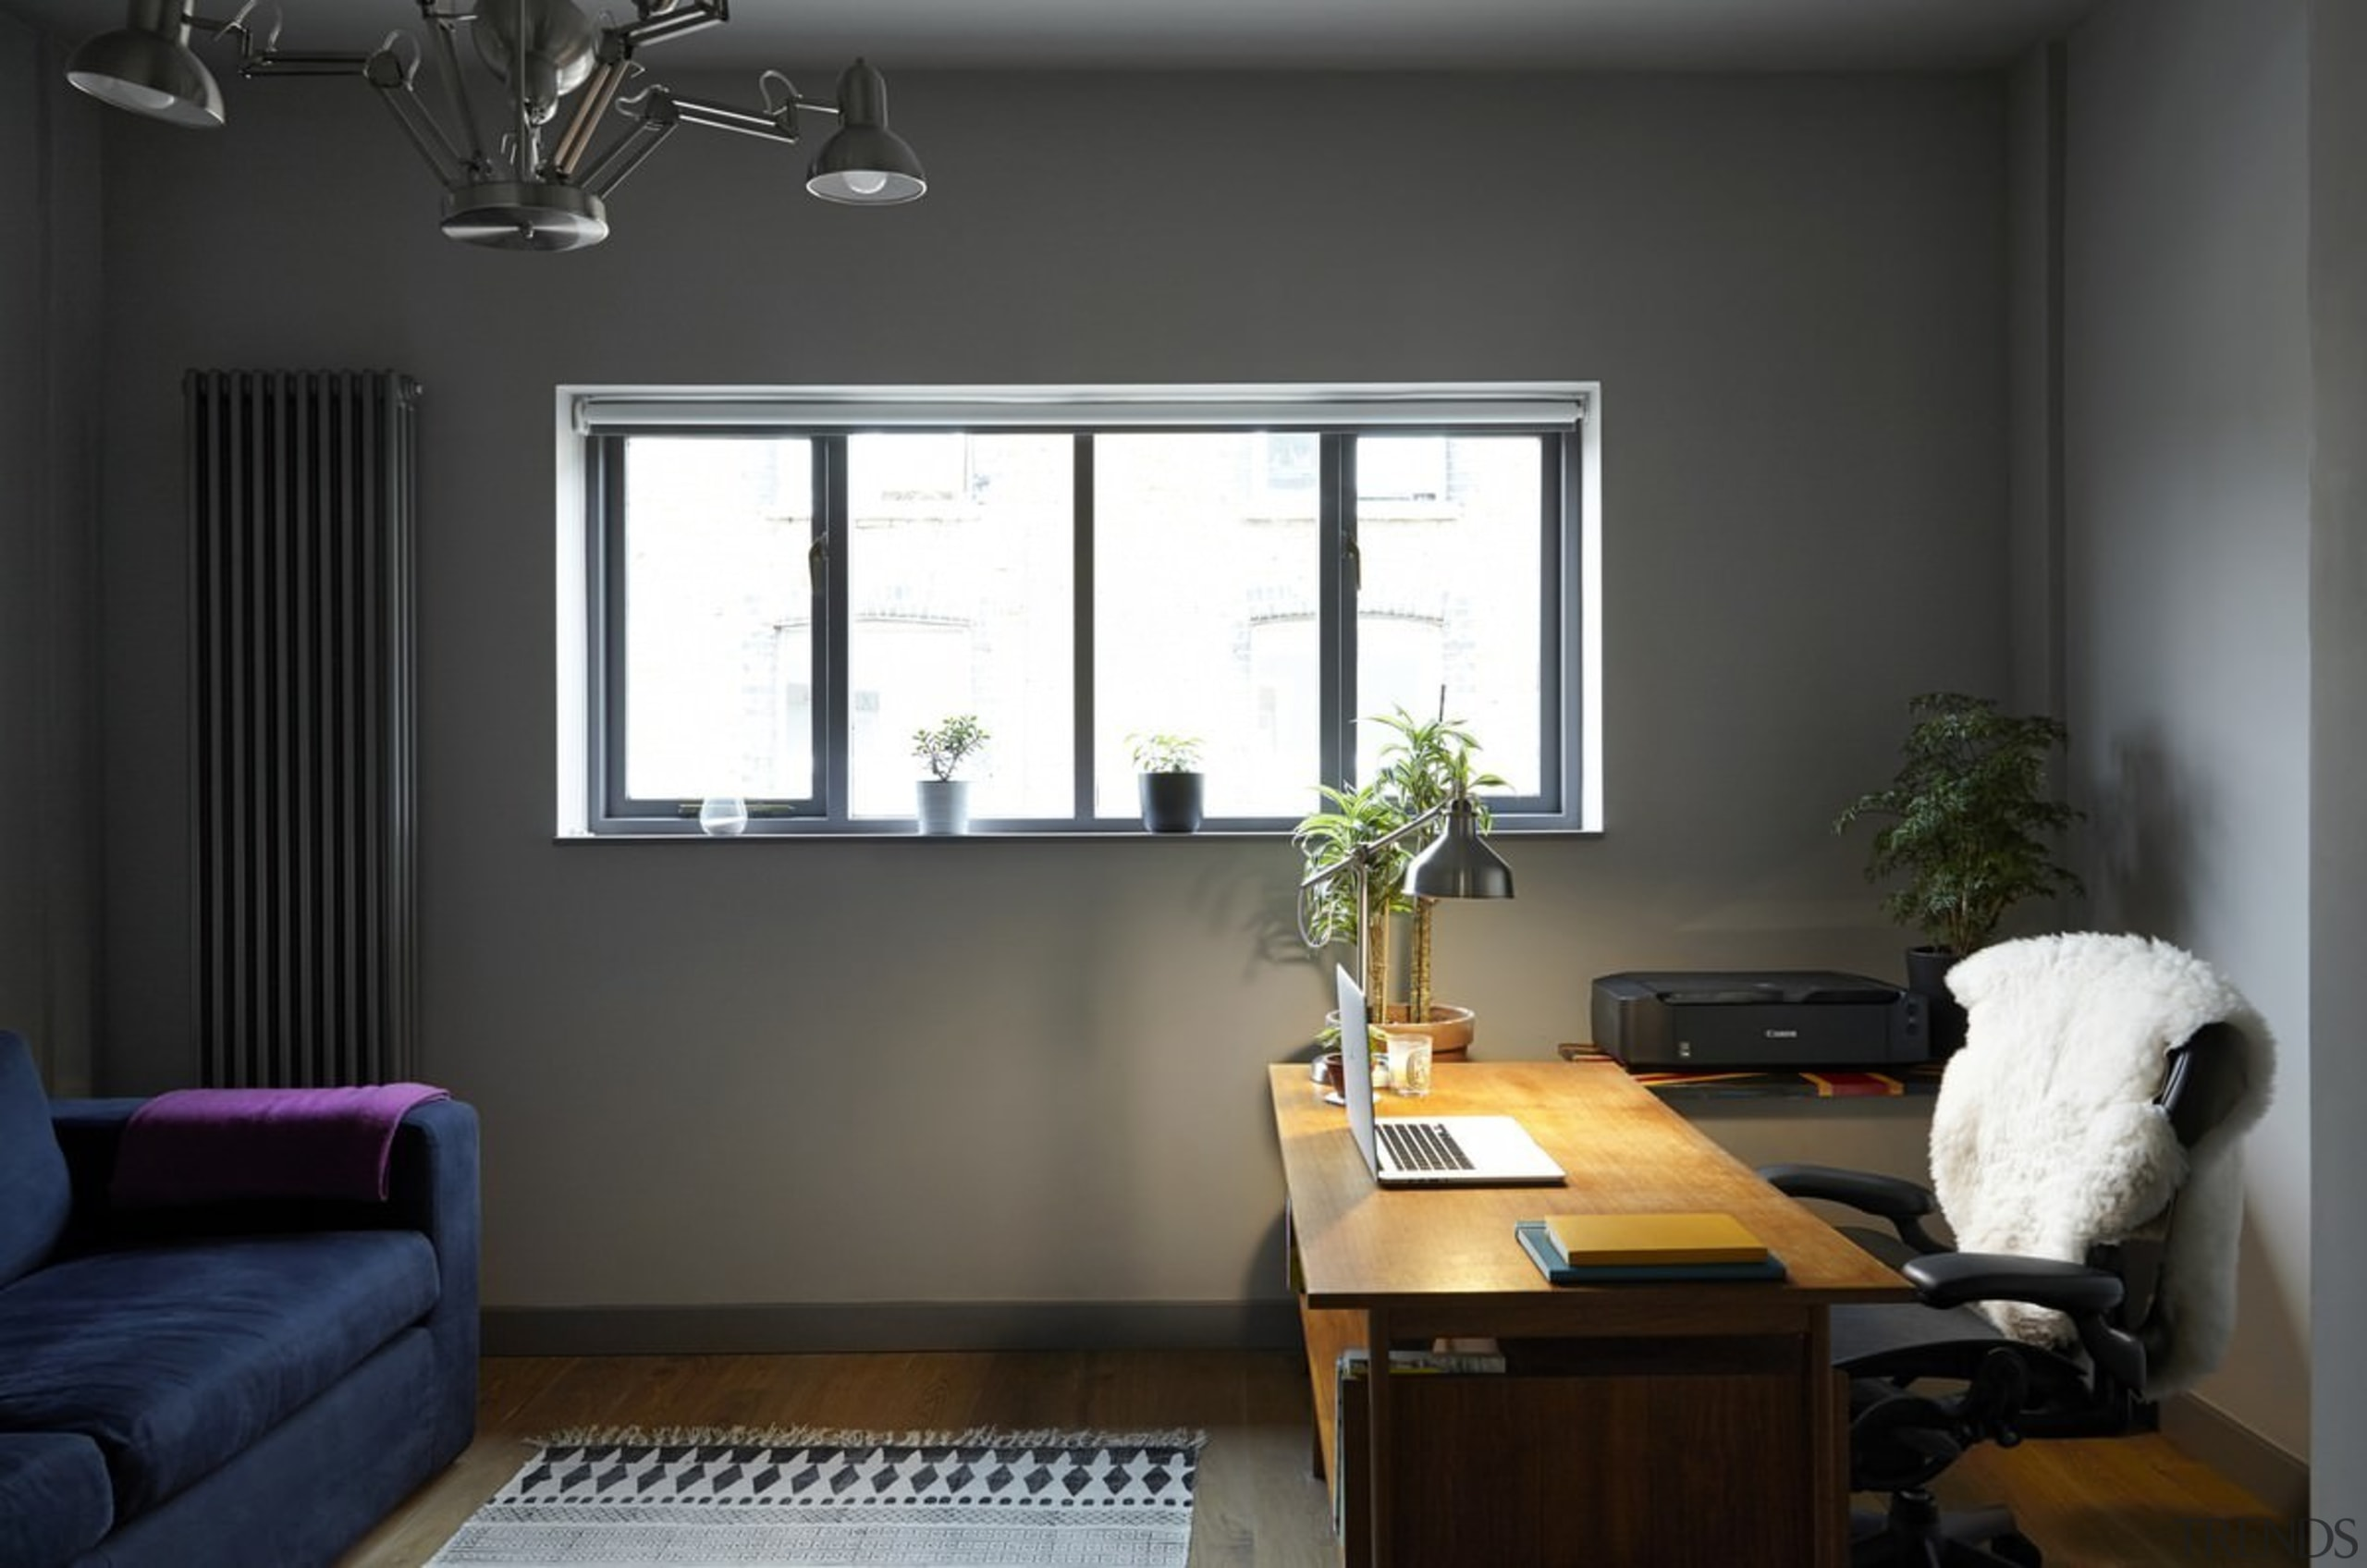 The home office is an ideal place to furniture, home, interior design, living room, office, room, window, window covering, black